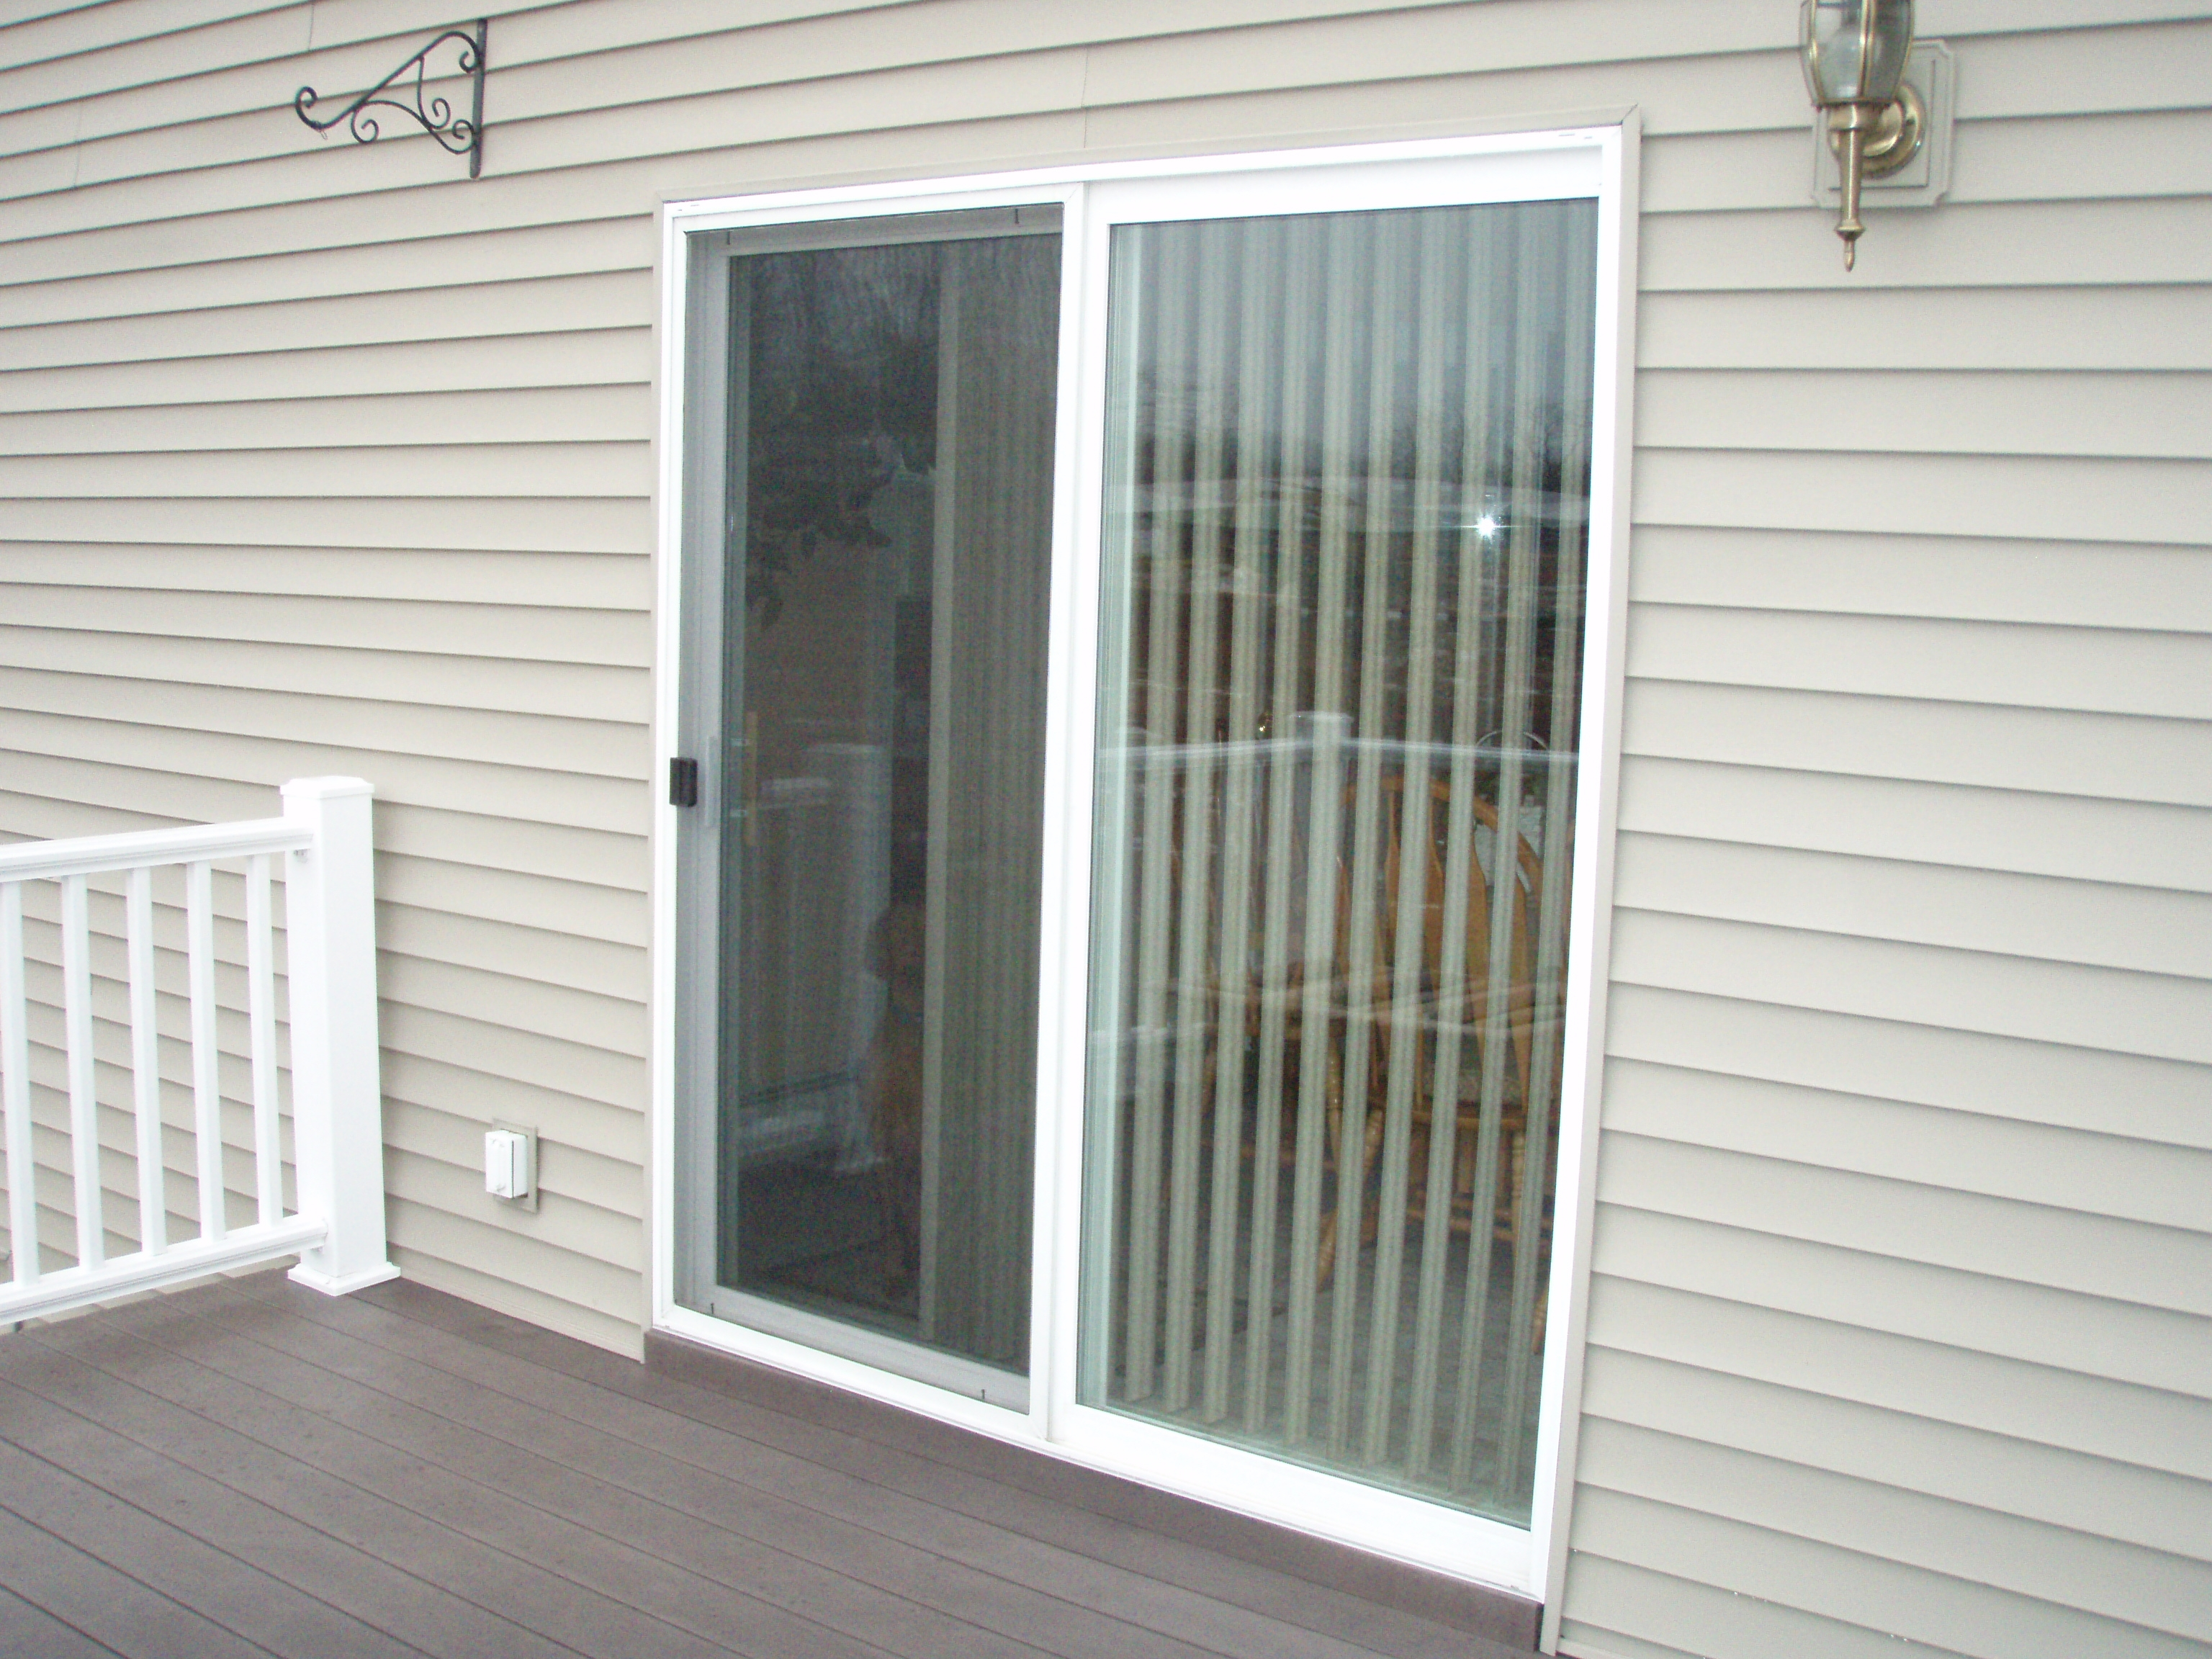 Sliding Glass Door Entry Locka reinforced lock on your patio door can protect your home from